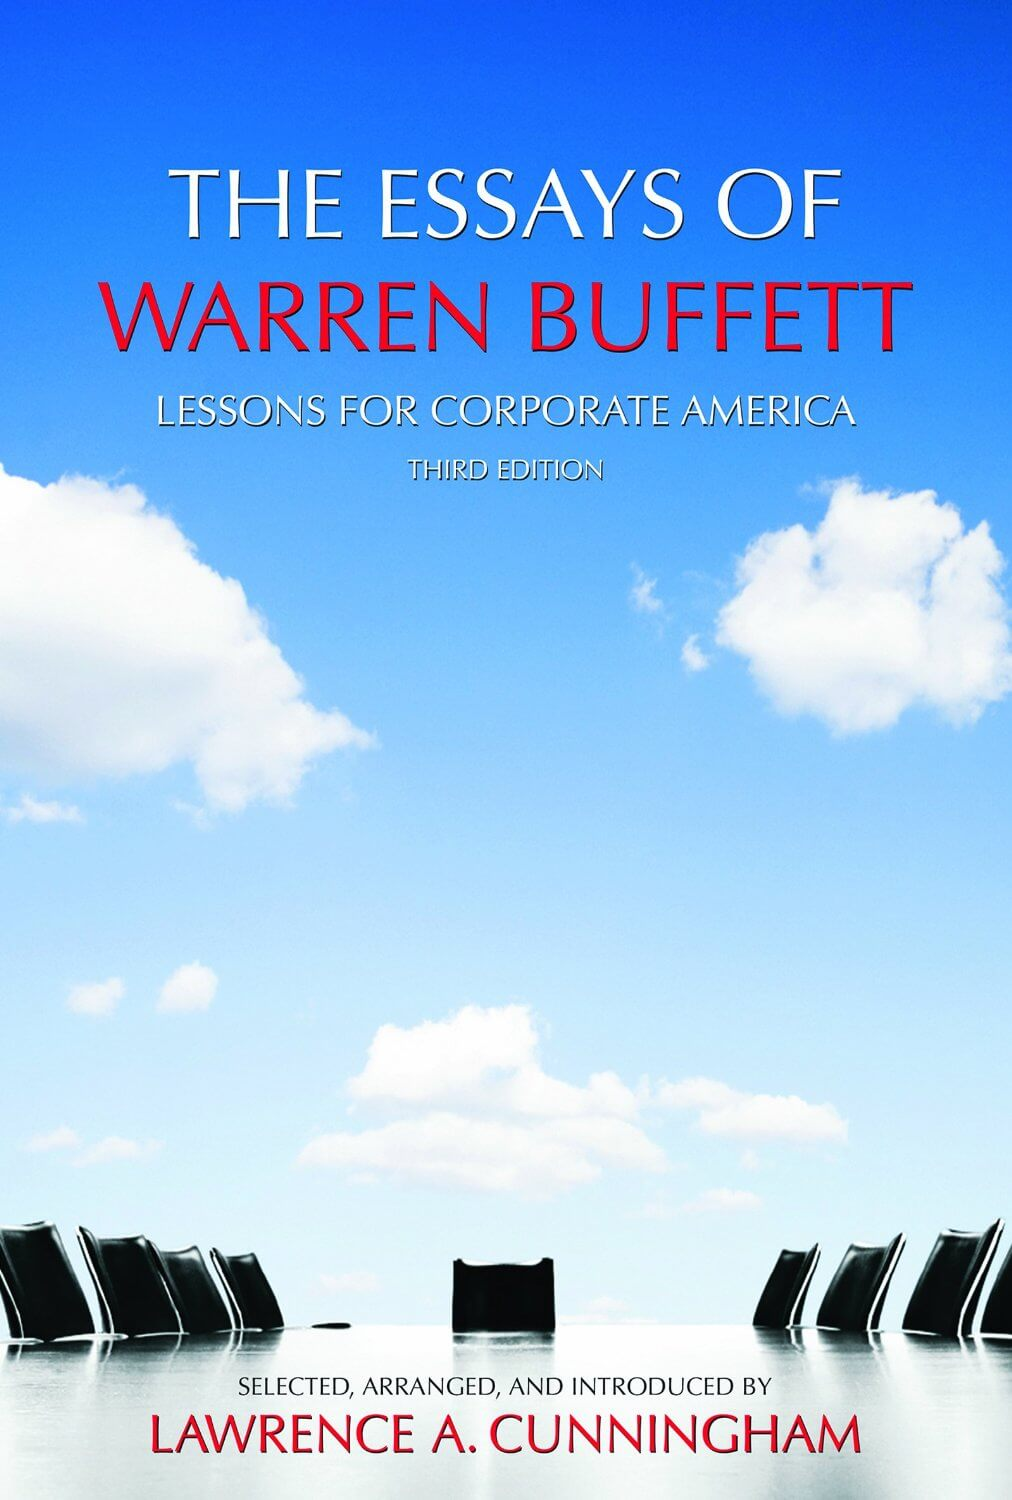 the essays of warren buffett By warren e buffett and edited by lawrence a cunningham john wiley & sons ltd, 2009, 328 pp every year, warren buffett, ceo of berkshire hathaway inc, writes a letter to shareholders reviewing annual operating and investment performance.